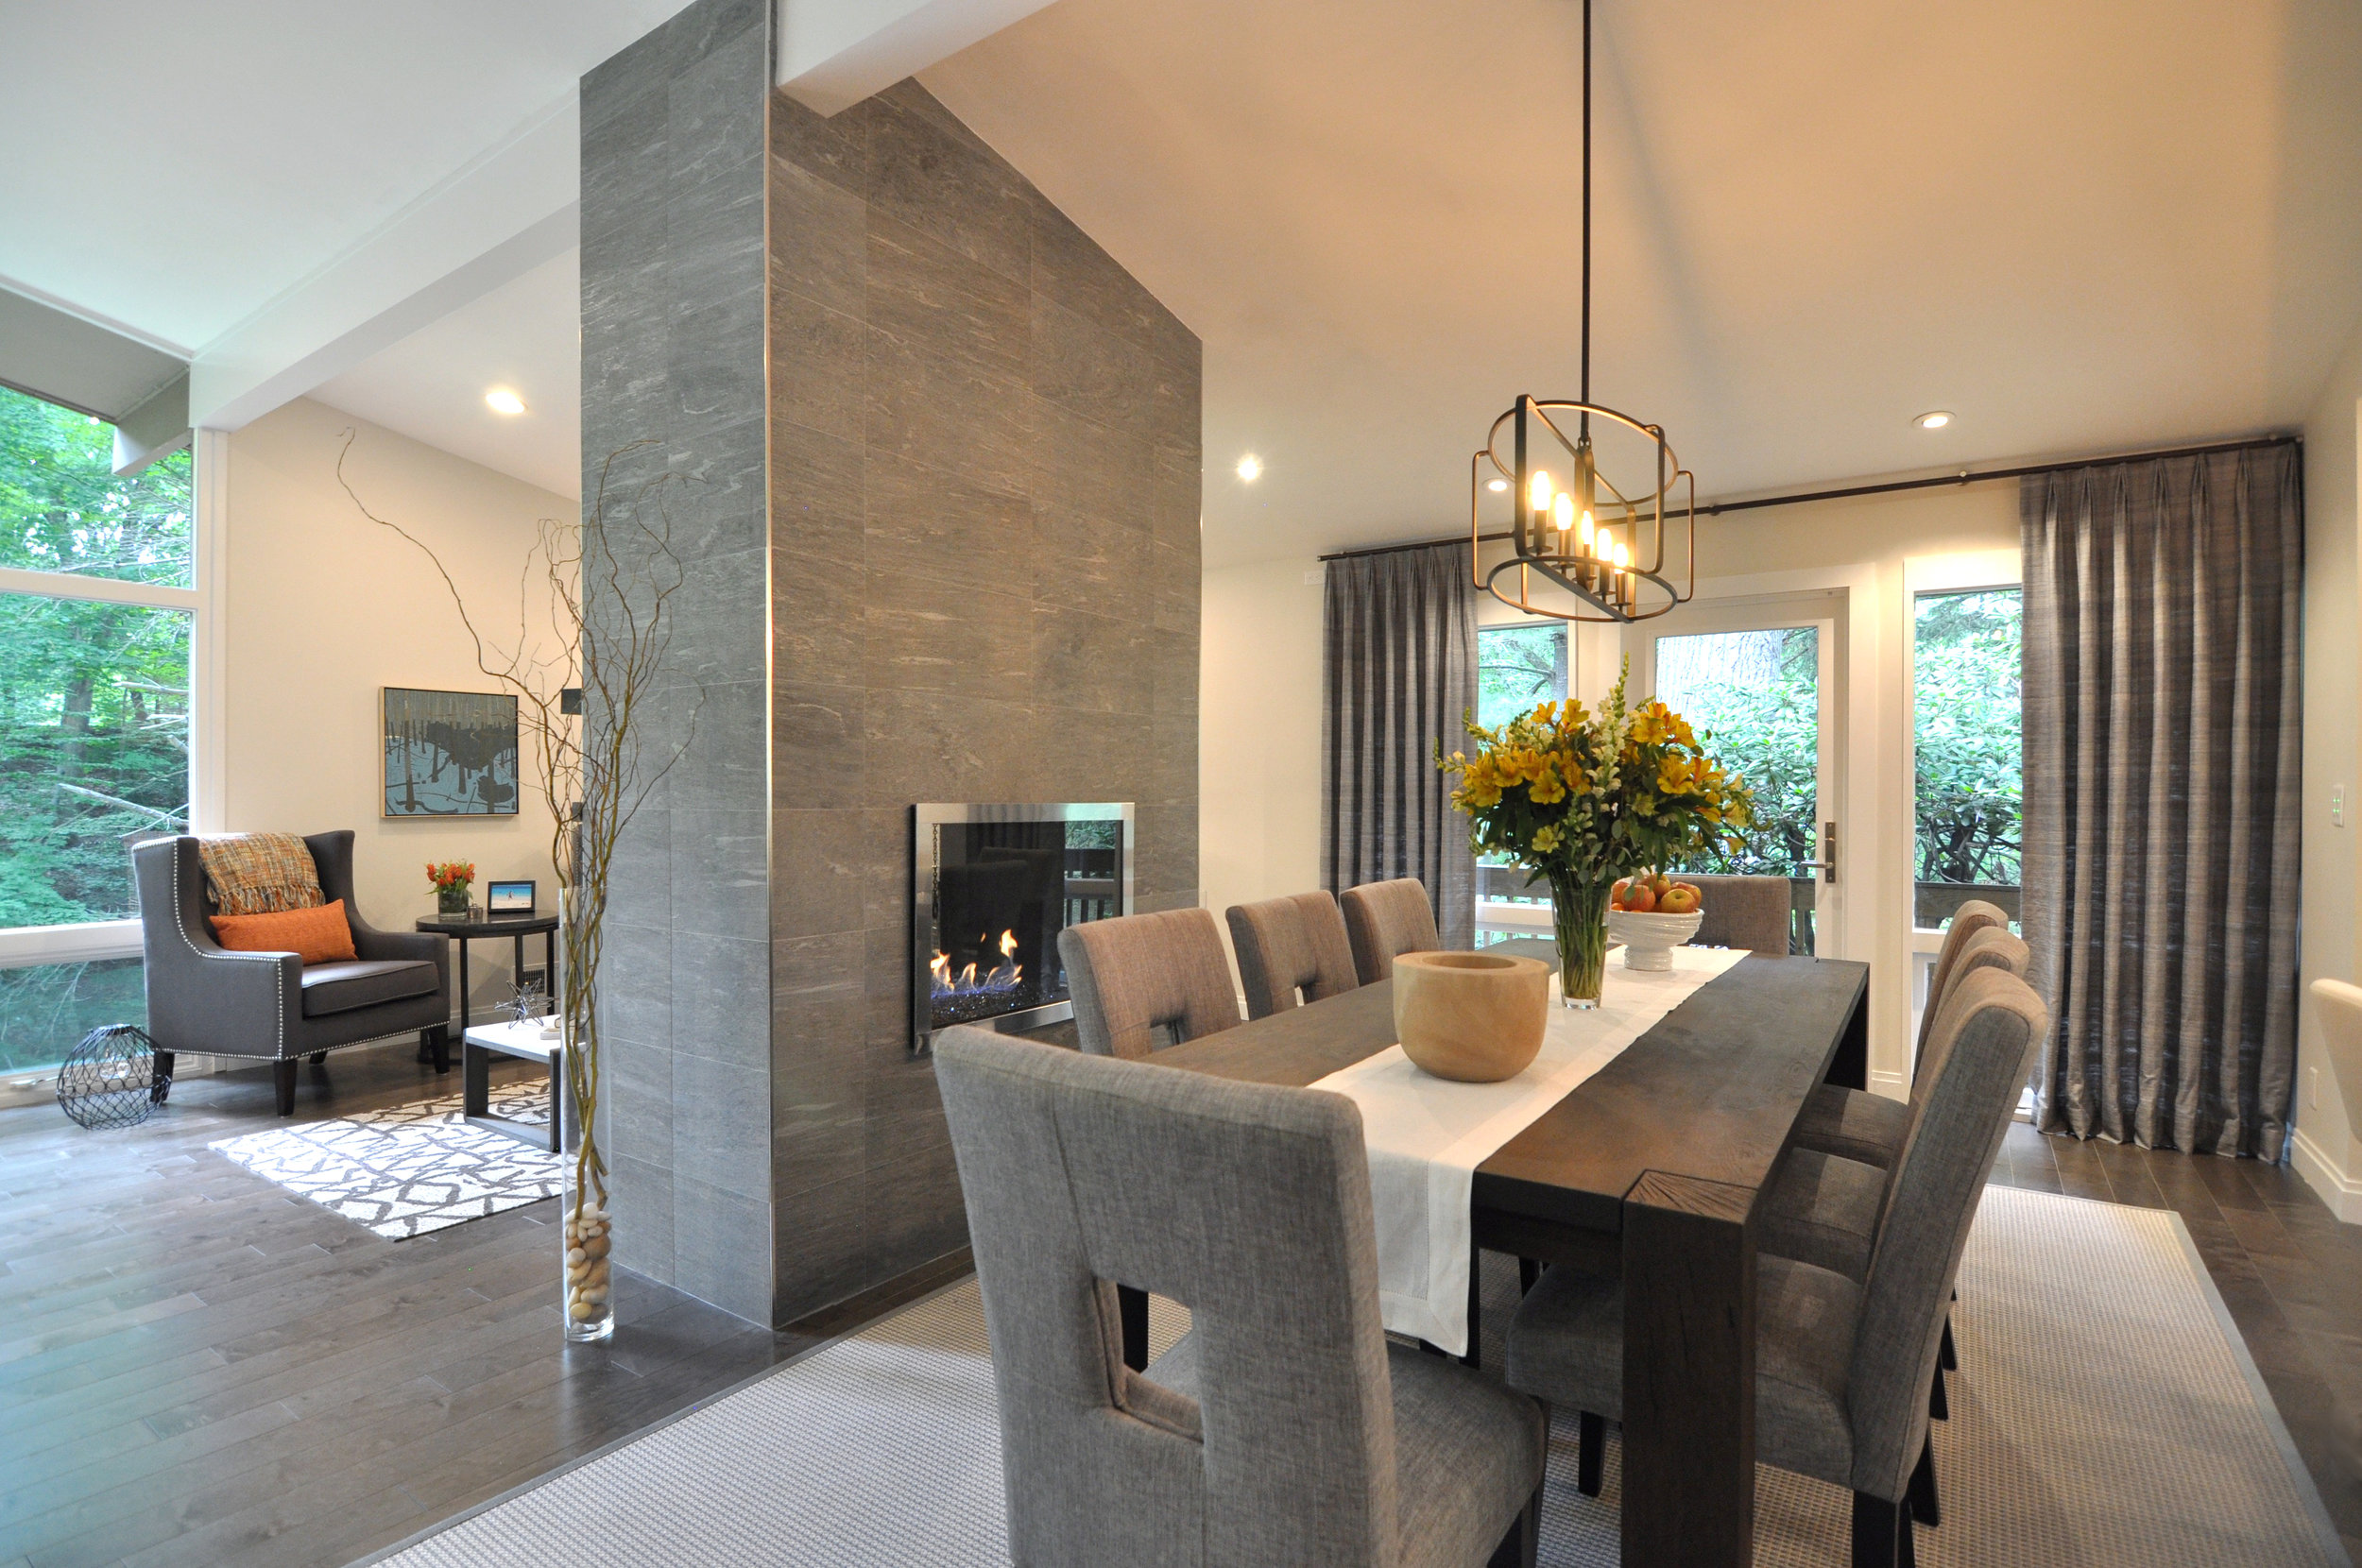 Kim A Mitchell_Design Lead_The Property Brothers_Season 6_Episode 9_Modern Dining Room_View To Family Room_Fireplace Divider Wall_2017.jpg